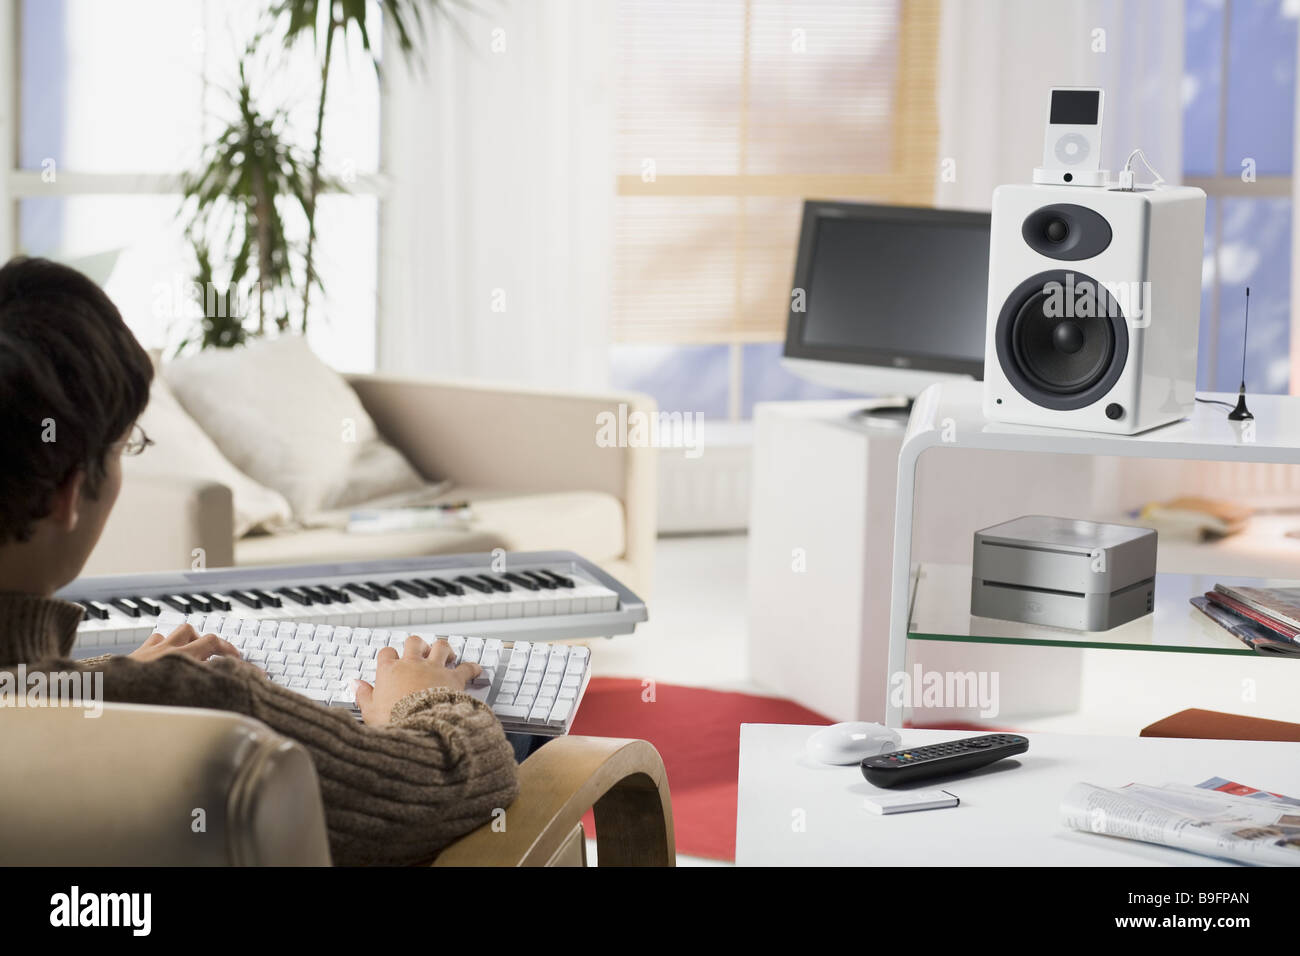 Living Room With Tv And People living room man young sitting keyboard data input back view detail